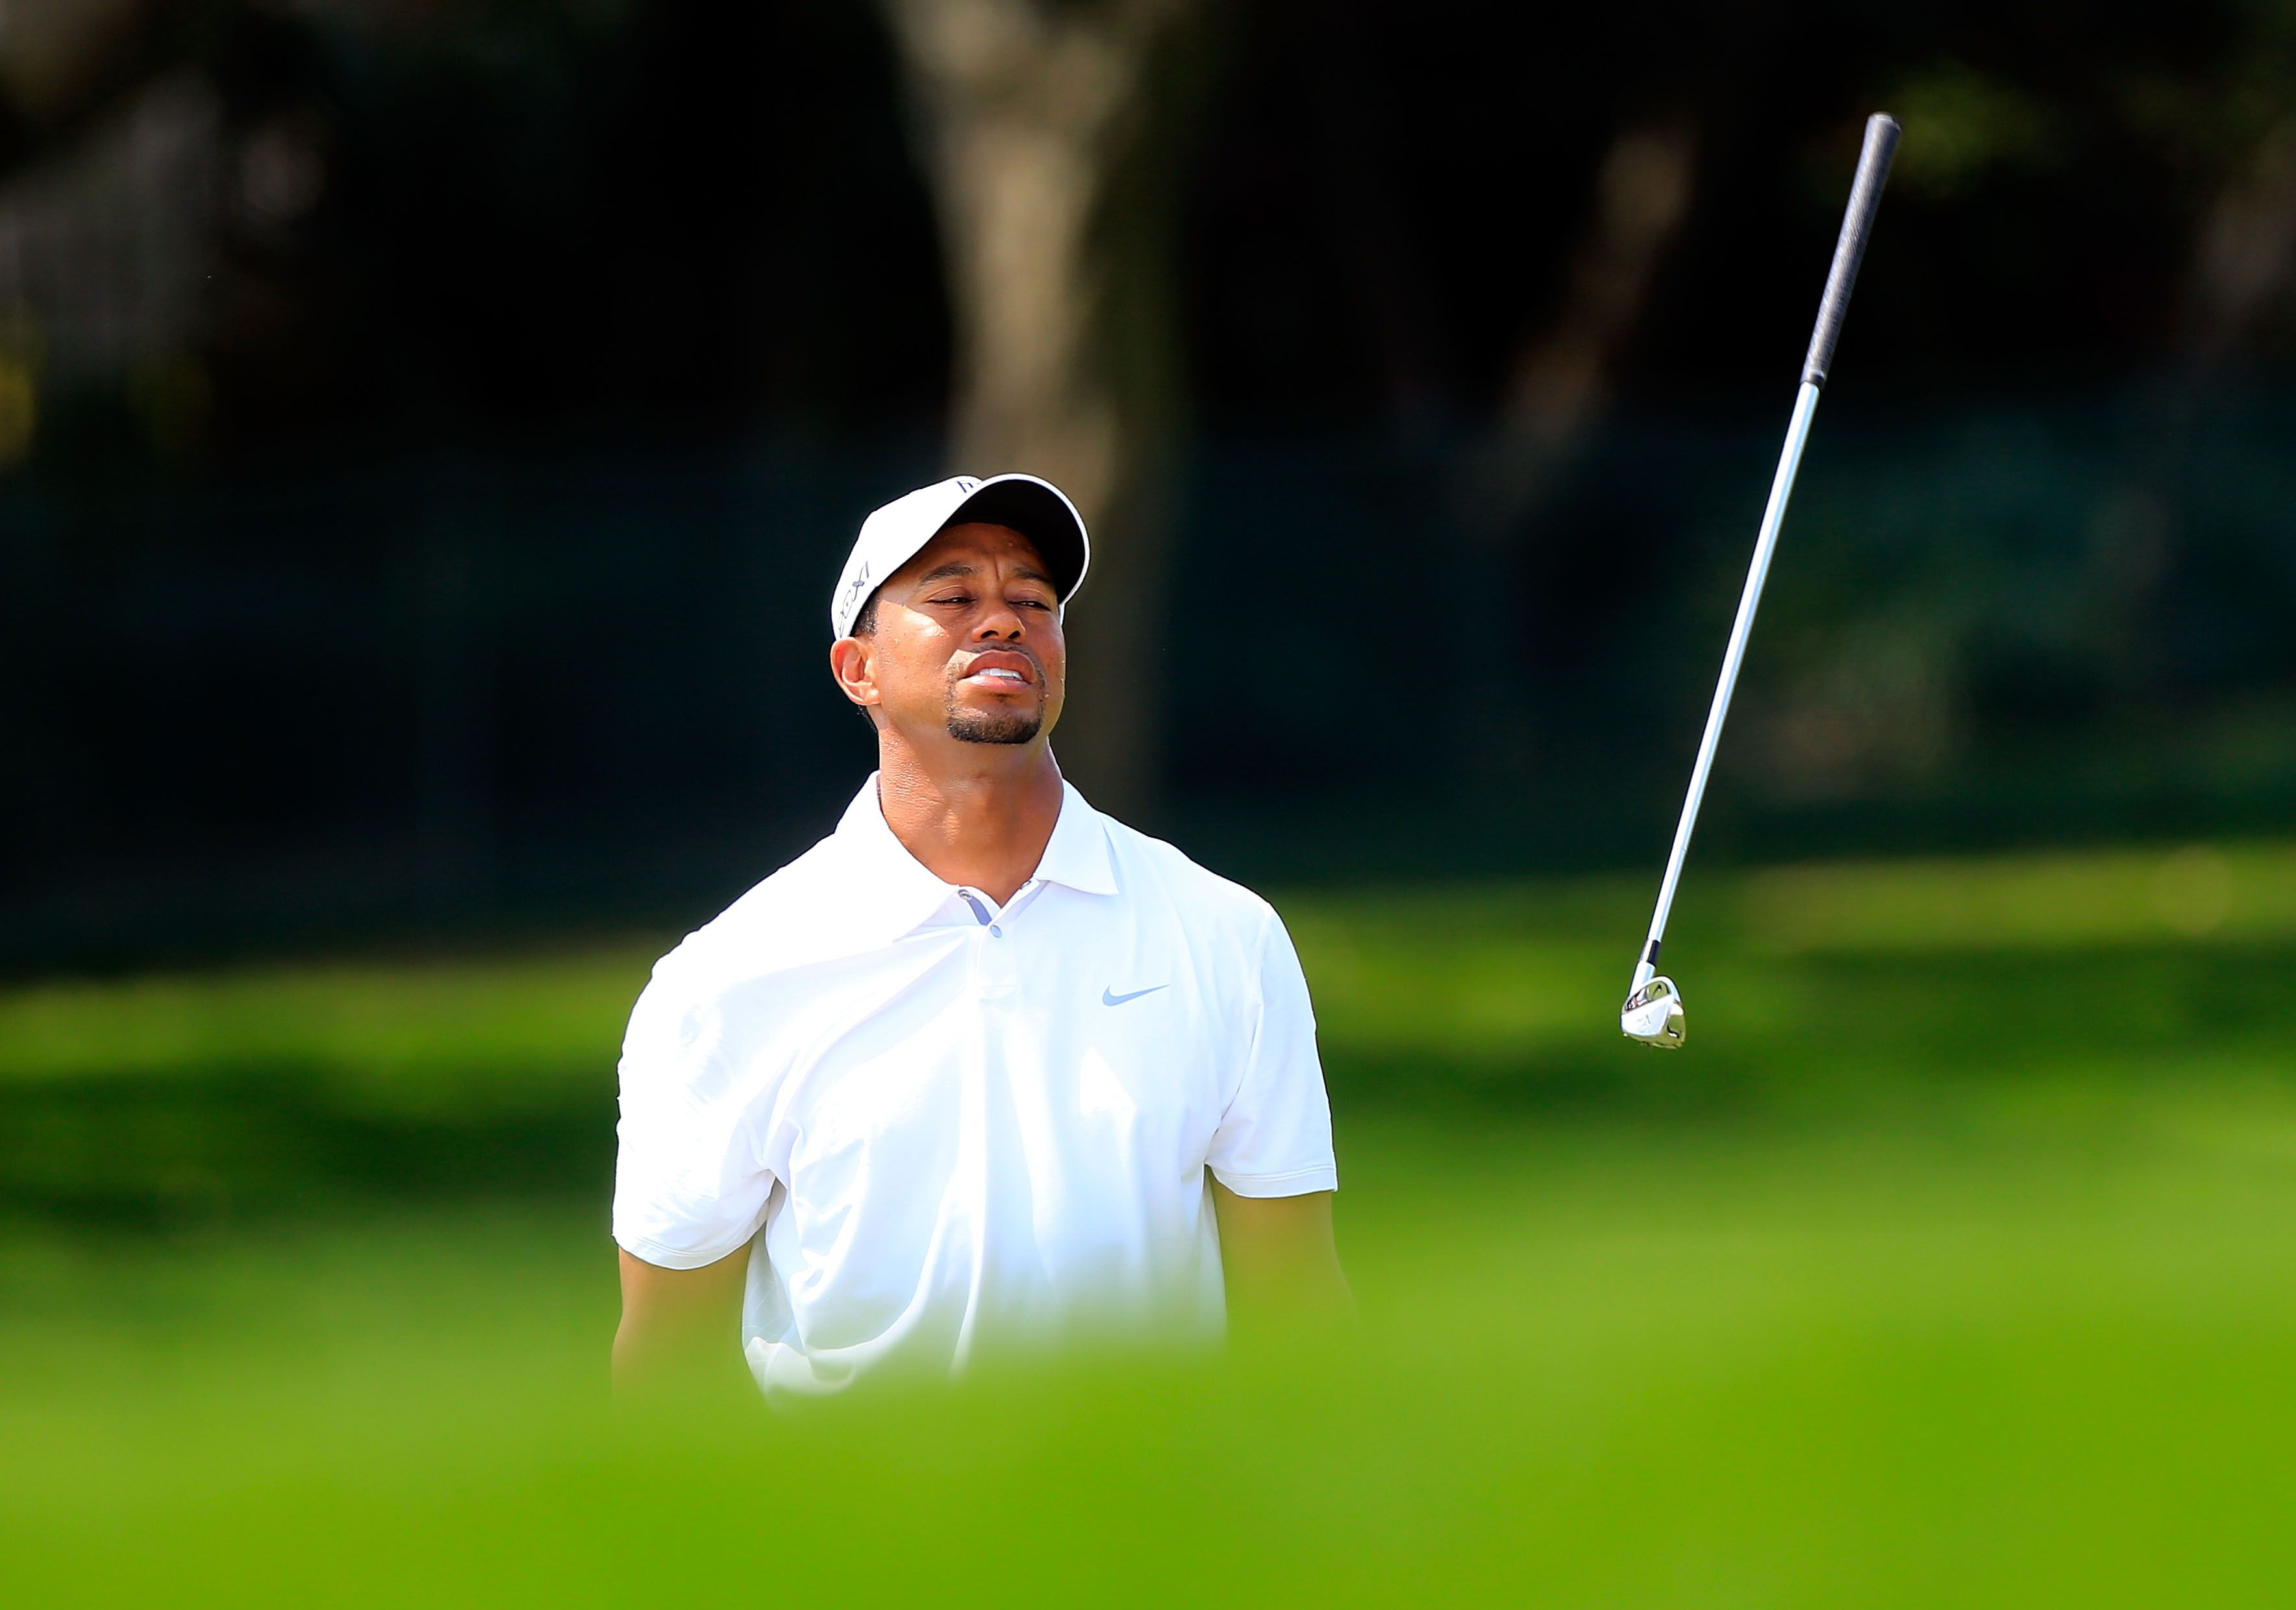 tiger woods u0026 39  temper  photos of the golfer throwing clubs